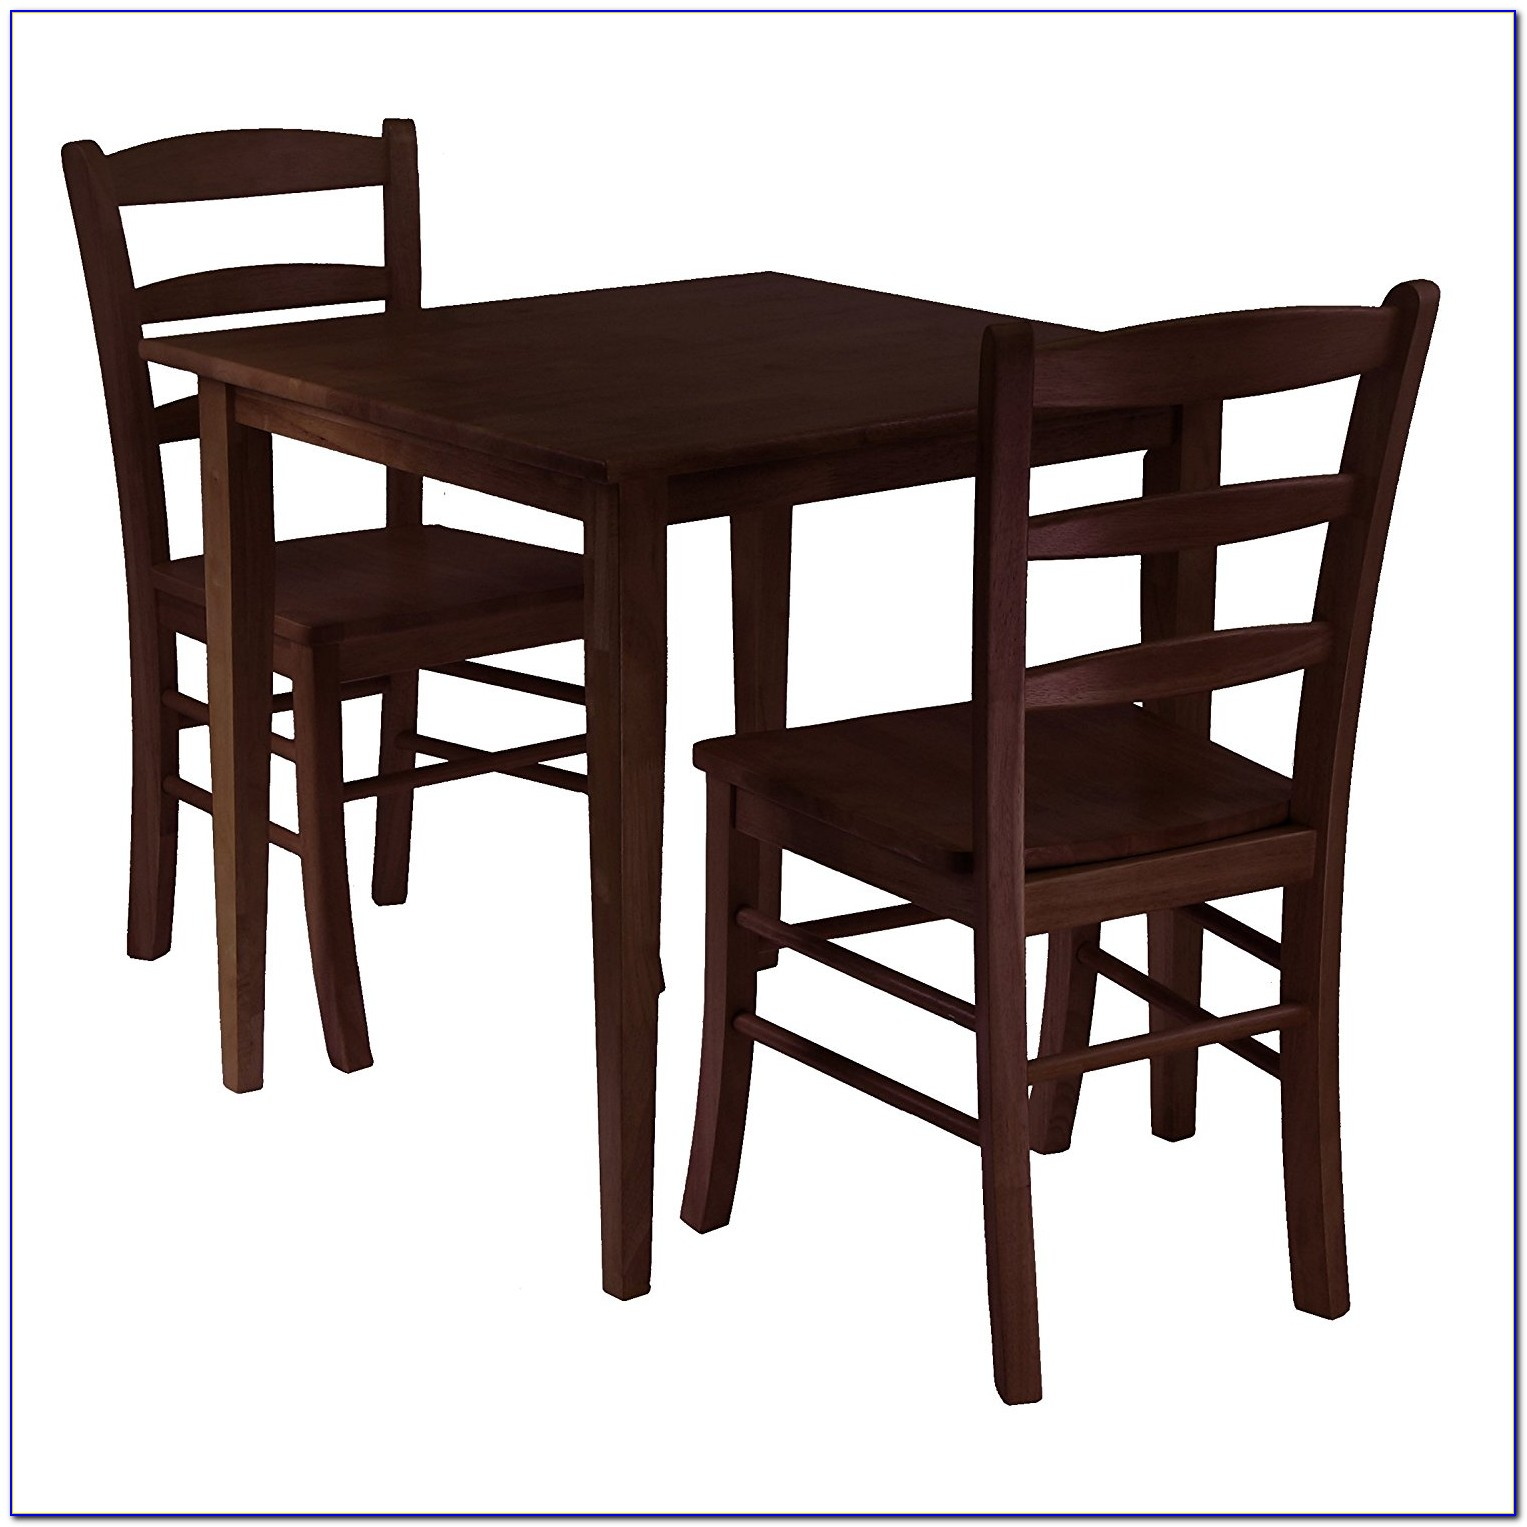 2 Person Table And Chairs